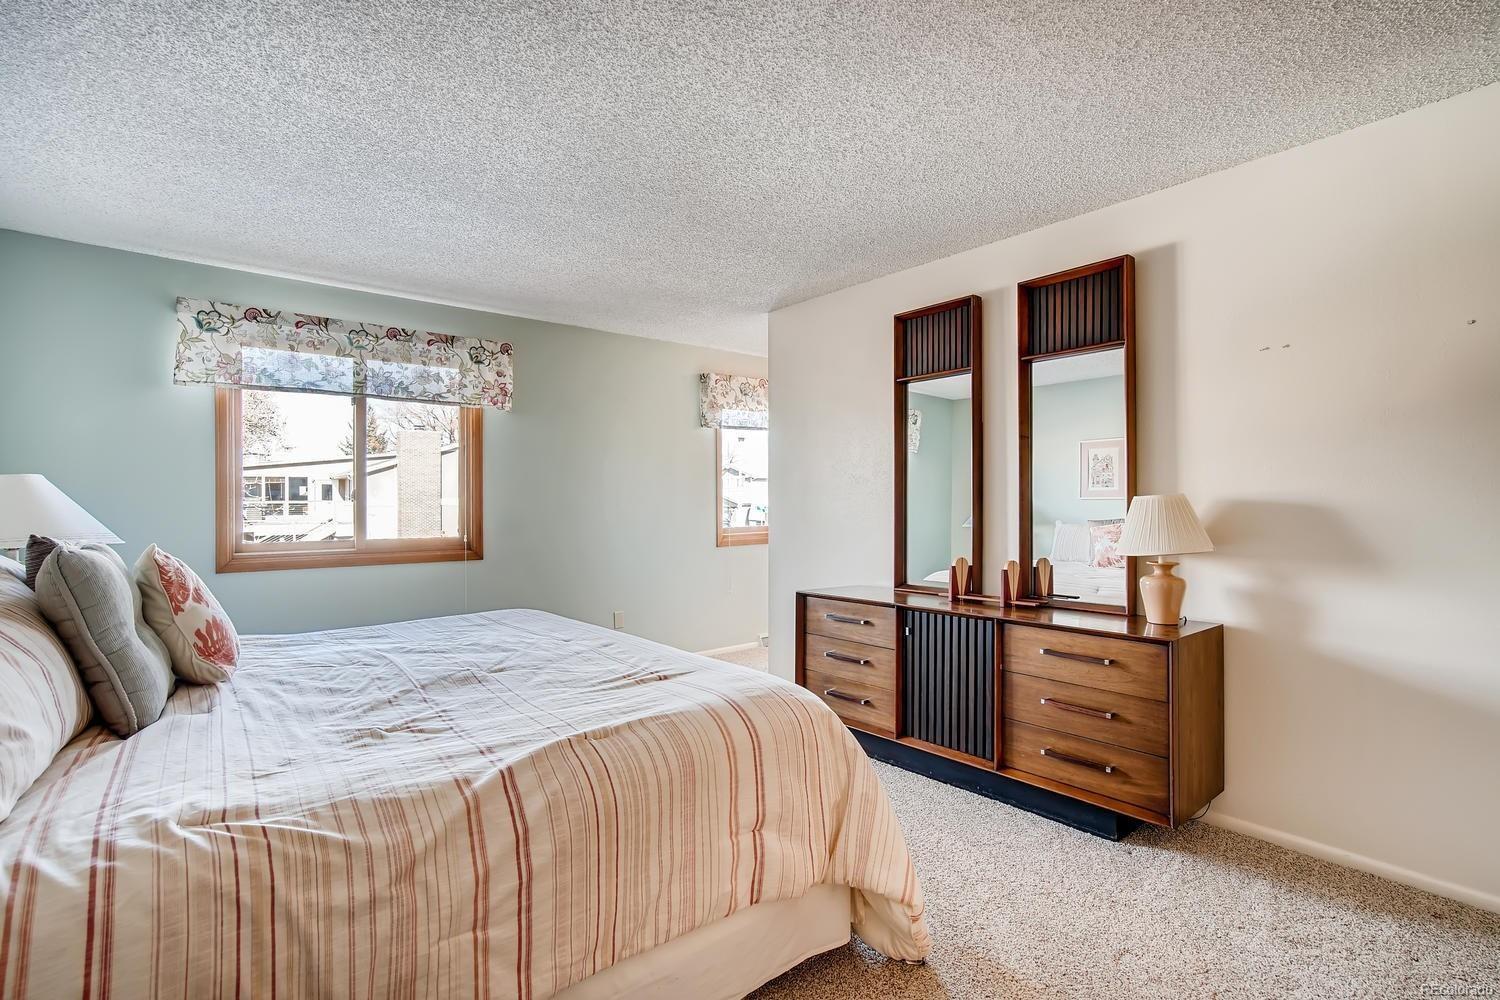 MLS# 2220629 - 16 - 4620 W 108th Place, Westminster, CO 80031